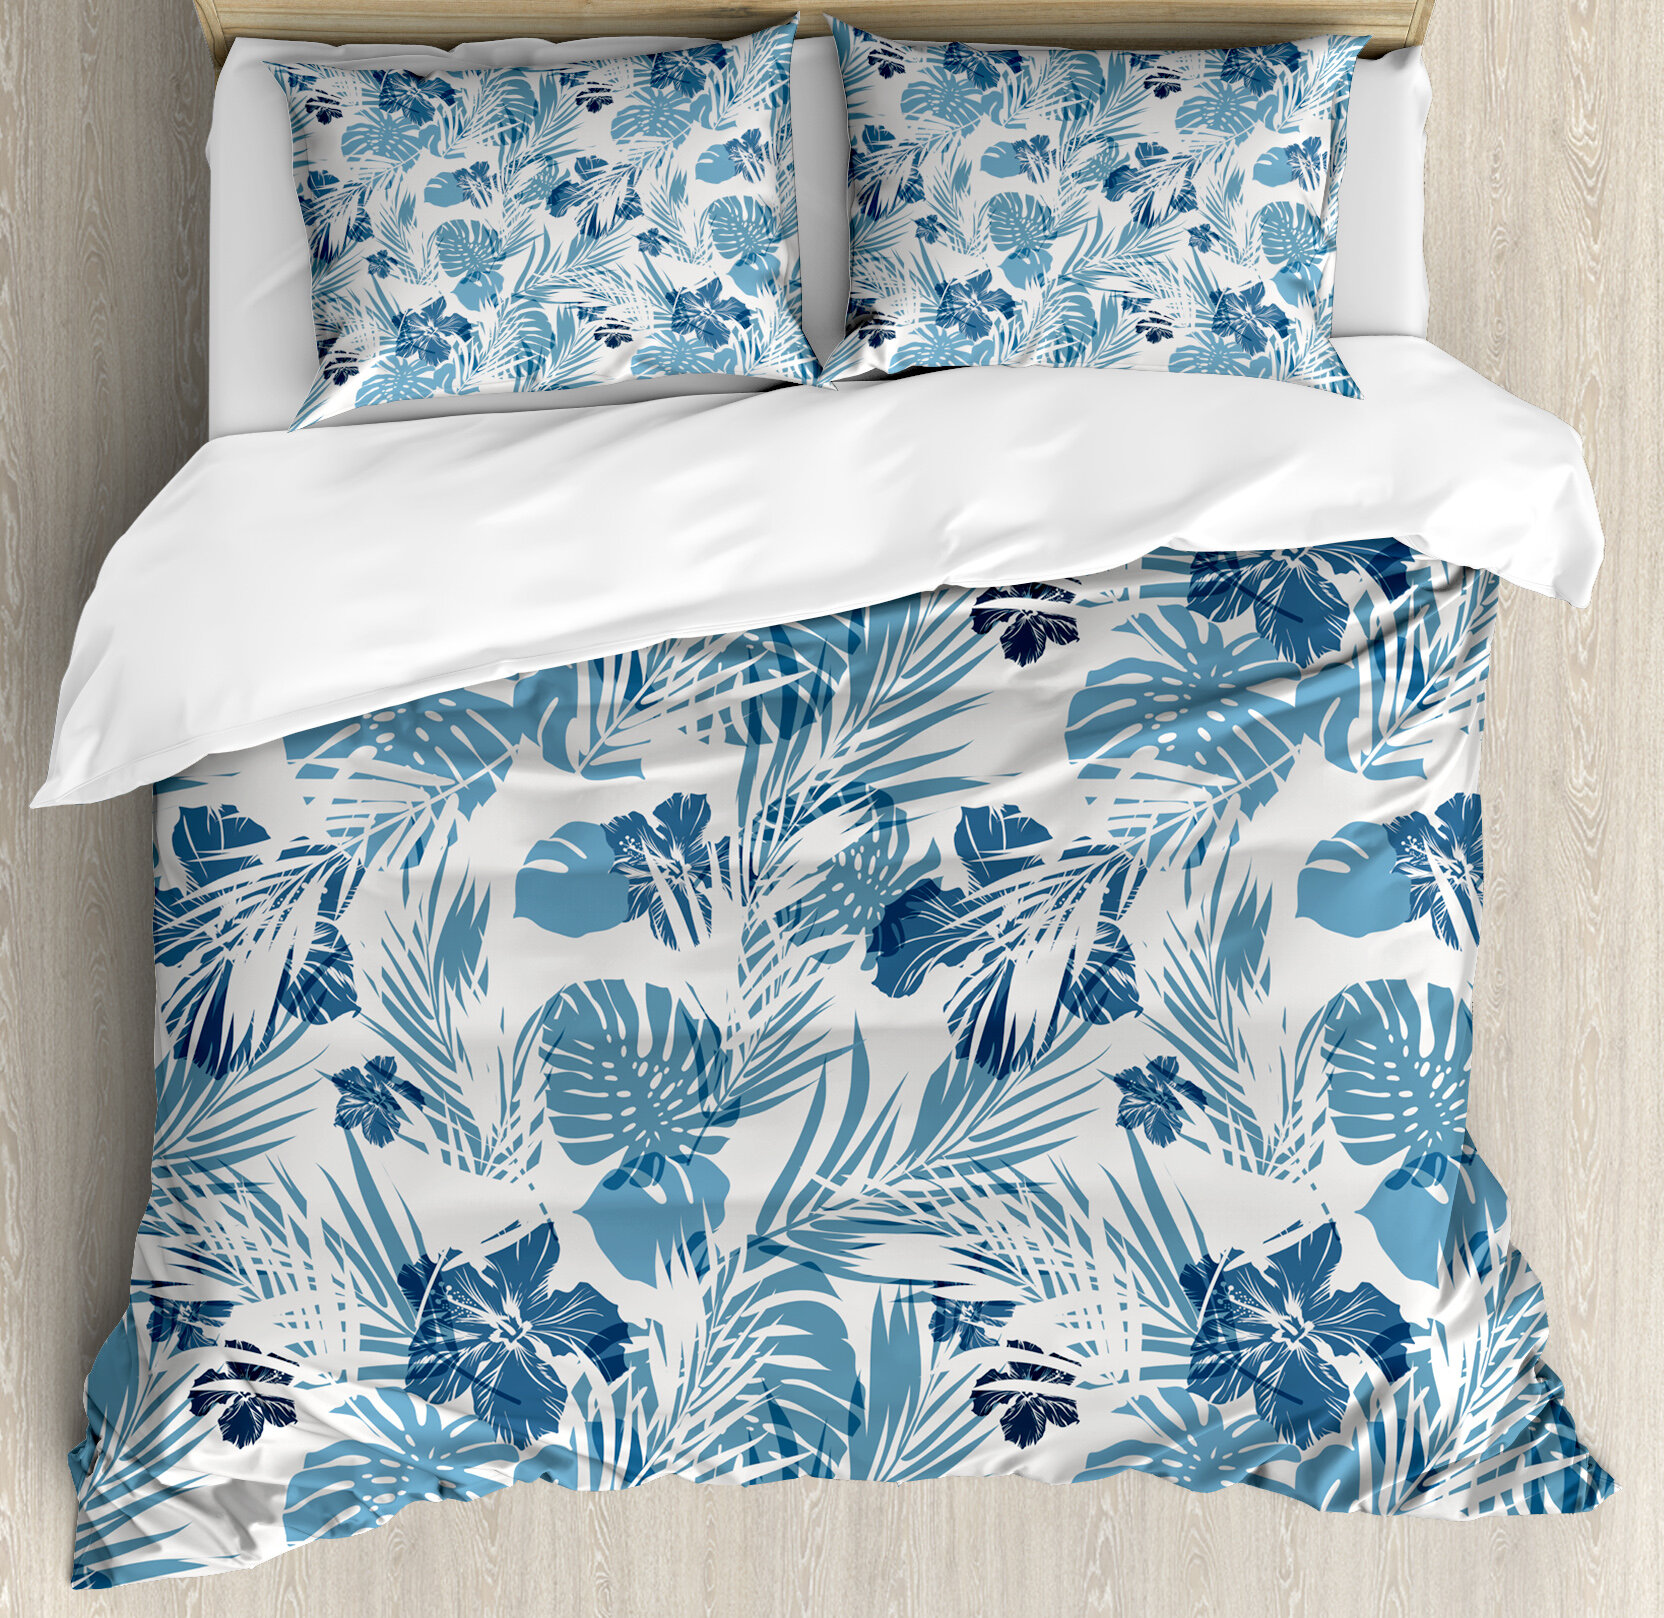 3 Piece Duvet Cover Set For Childrens Kids Teens Adults Turquoise Blue Twin Size Image Of A Tropical Island With The Palm Trees And Clear Sea Beach Theme Print Ocean Quilt Bedding Sets Duvet Covers Kids